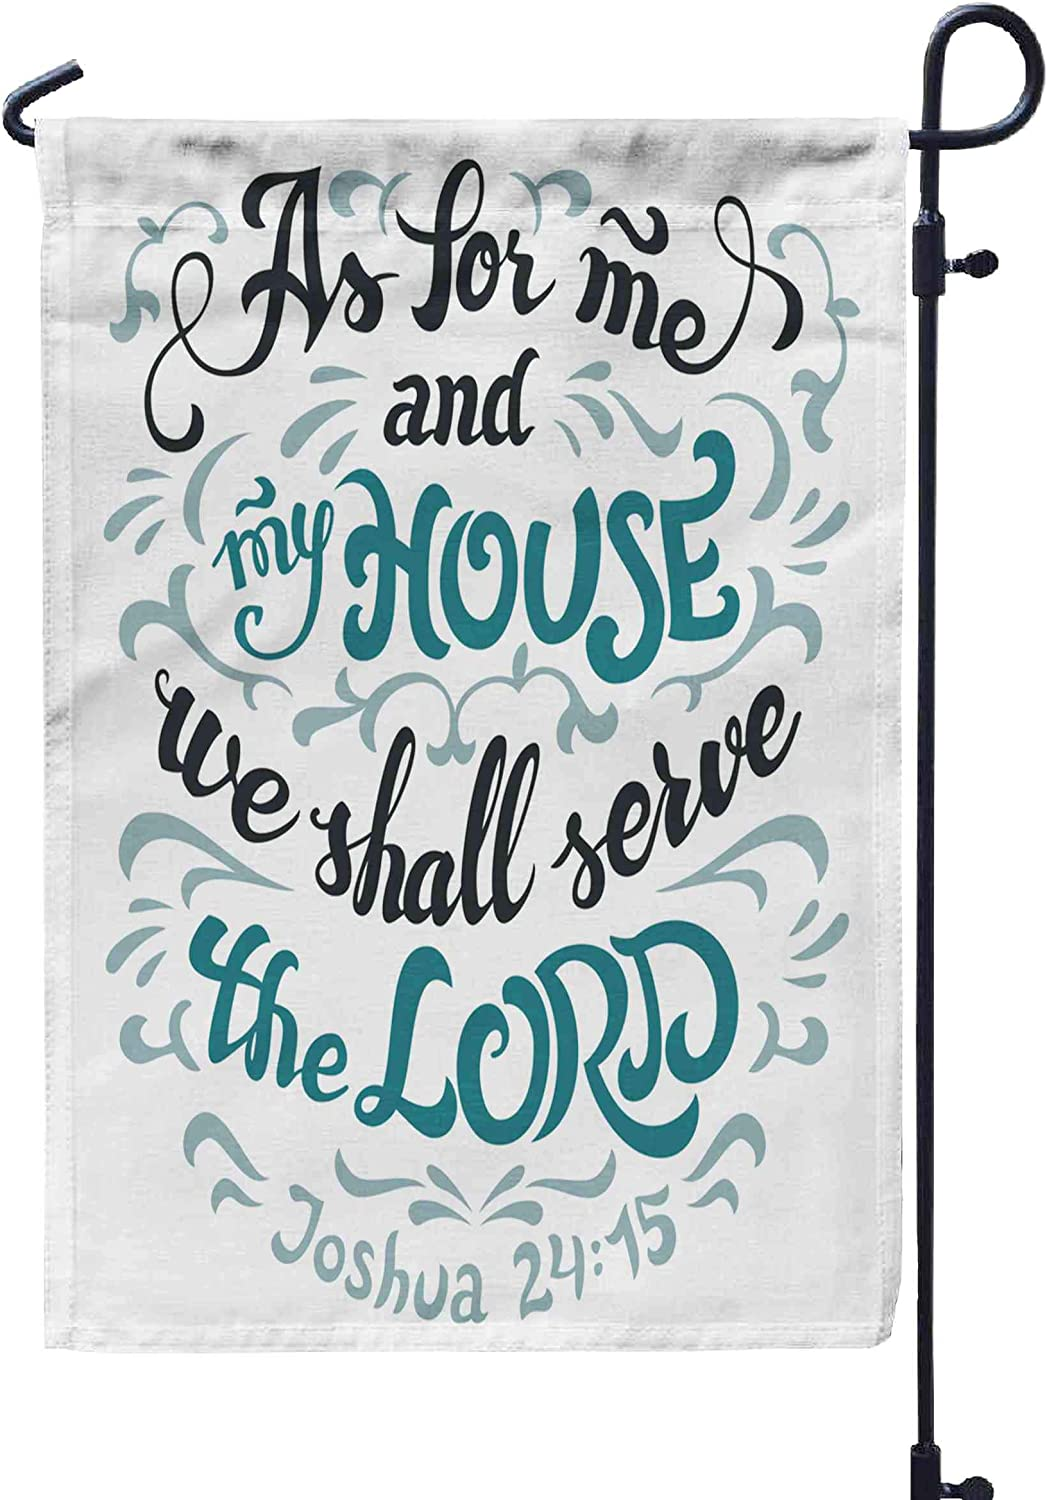 HerysTa Garden Flag Stand, Decorative Yard Farmhouse Holiday Banner 12 x 18 inches As Me My House We Shall The Lord Bible Quote Isolated White Background Joshua Double-Sided Seasonal Garden Flags